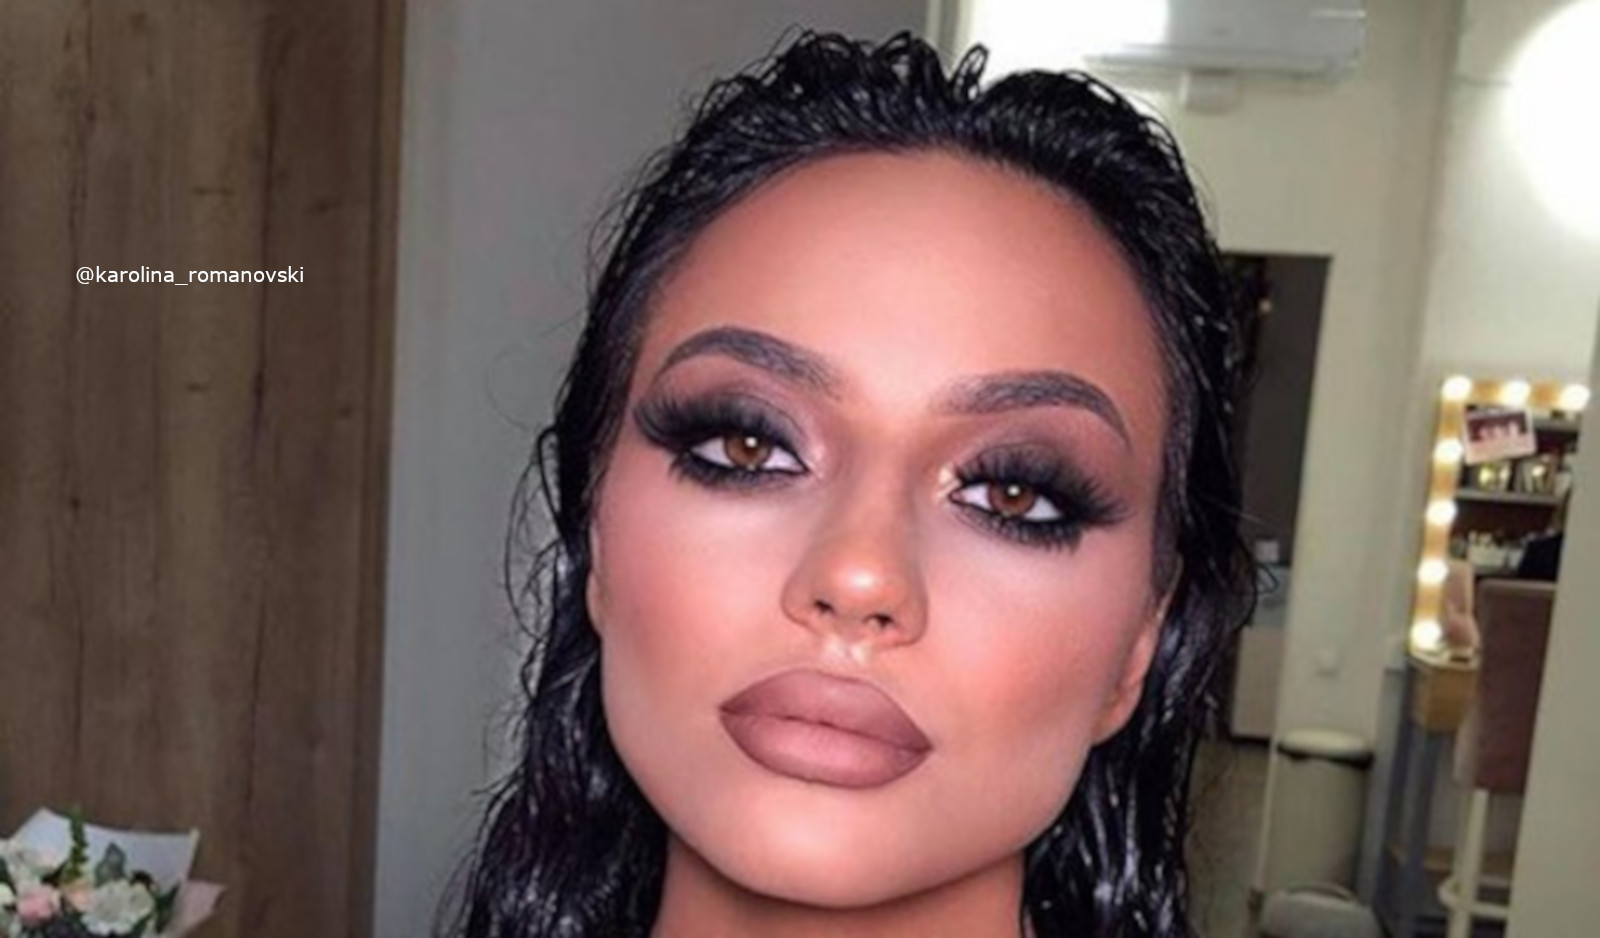 90s Supermodel Makeup Looks You Can Wear Today